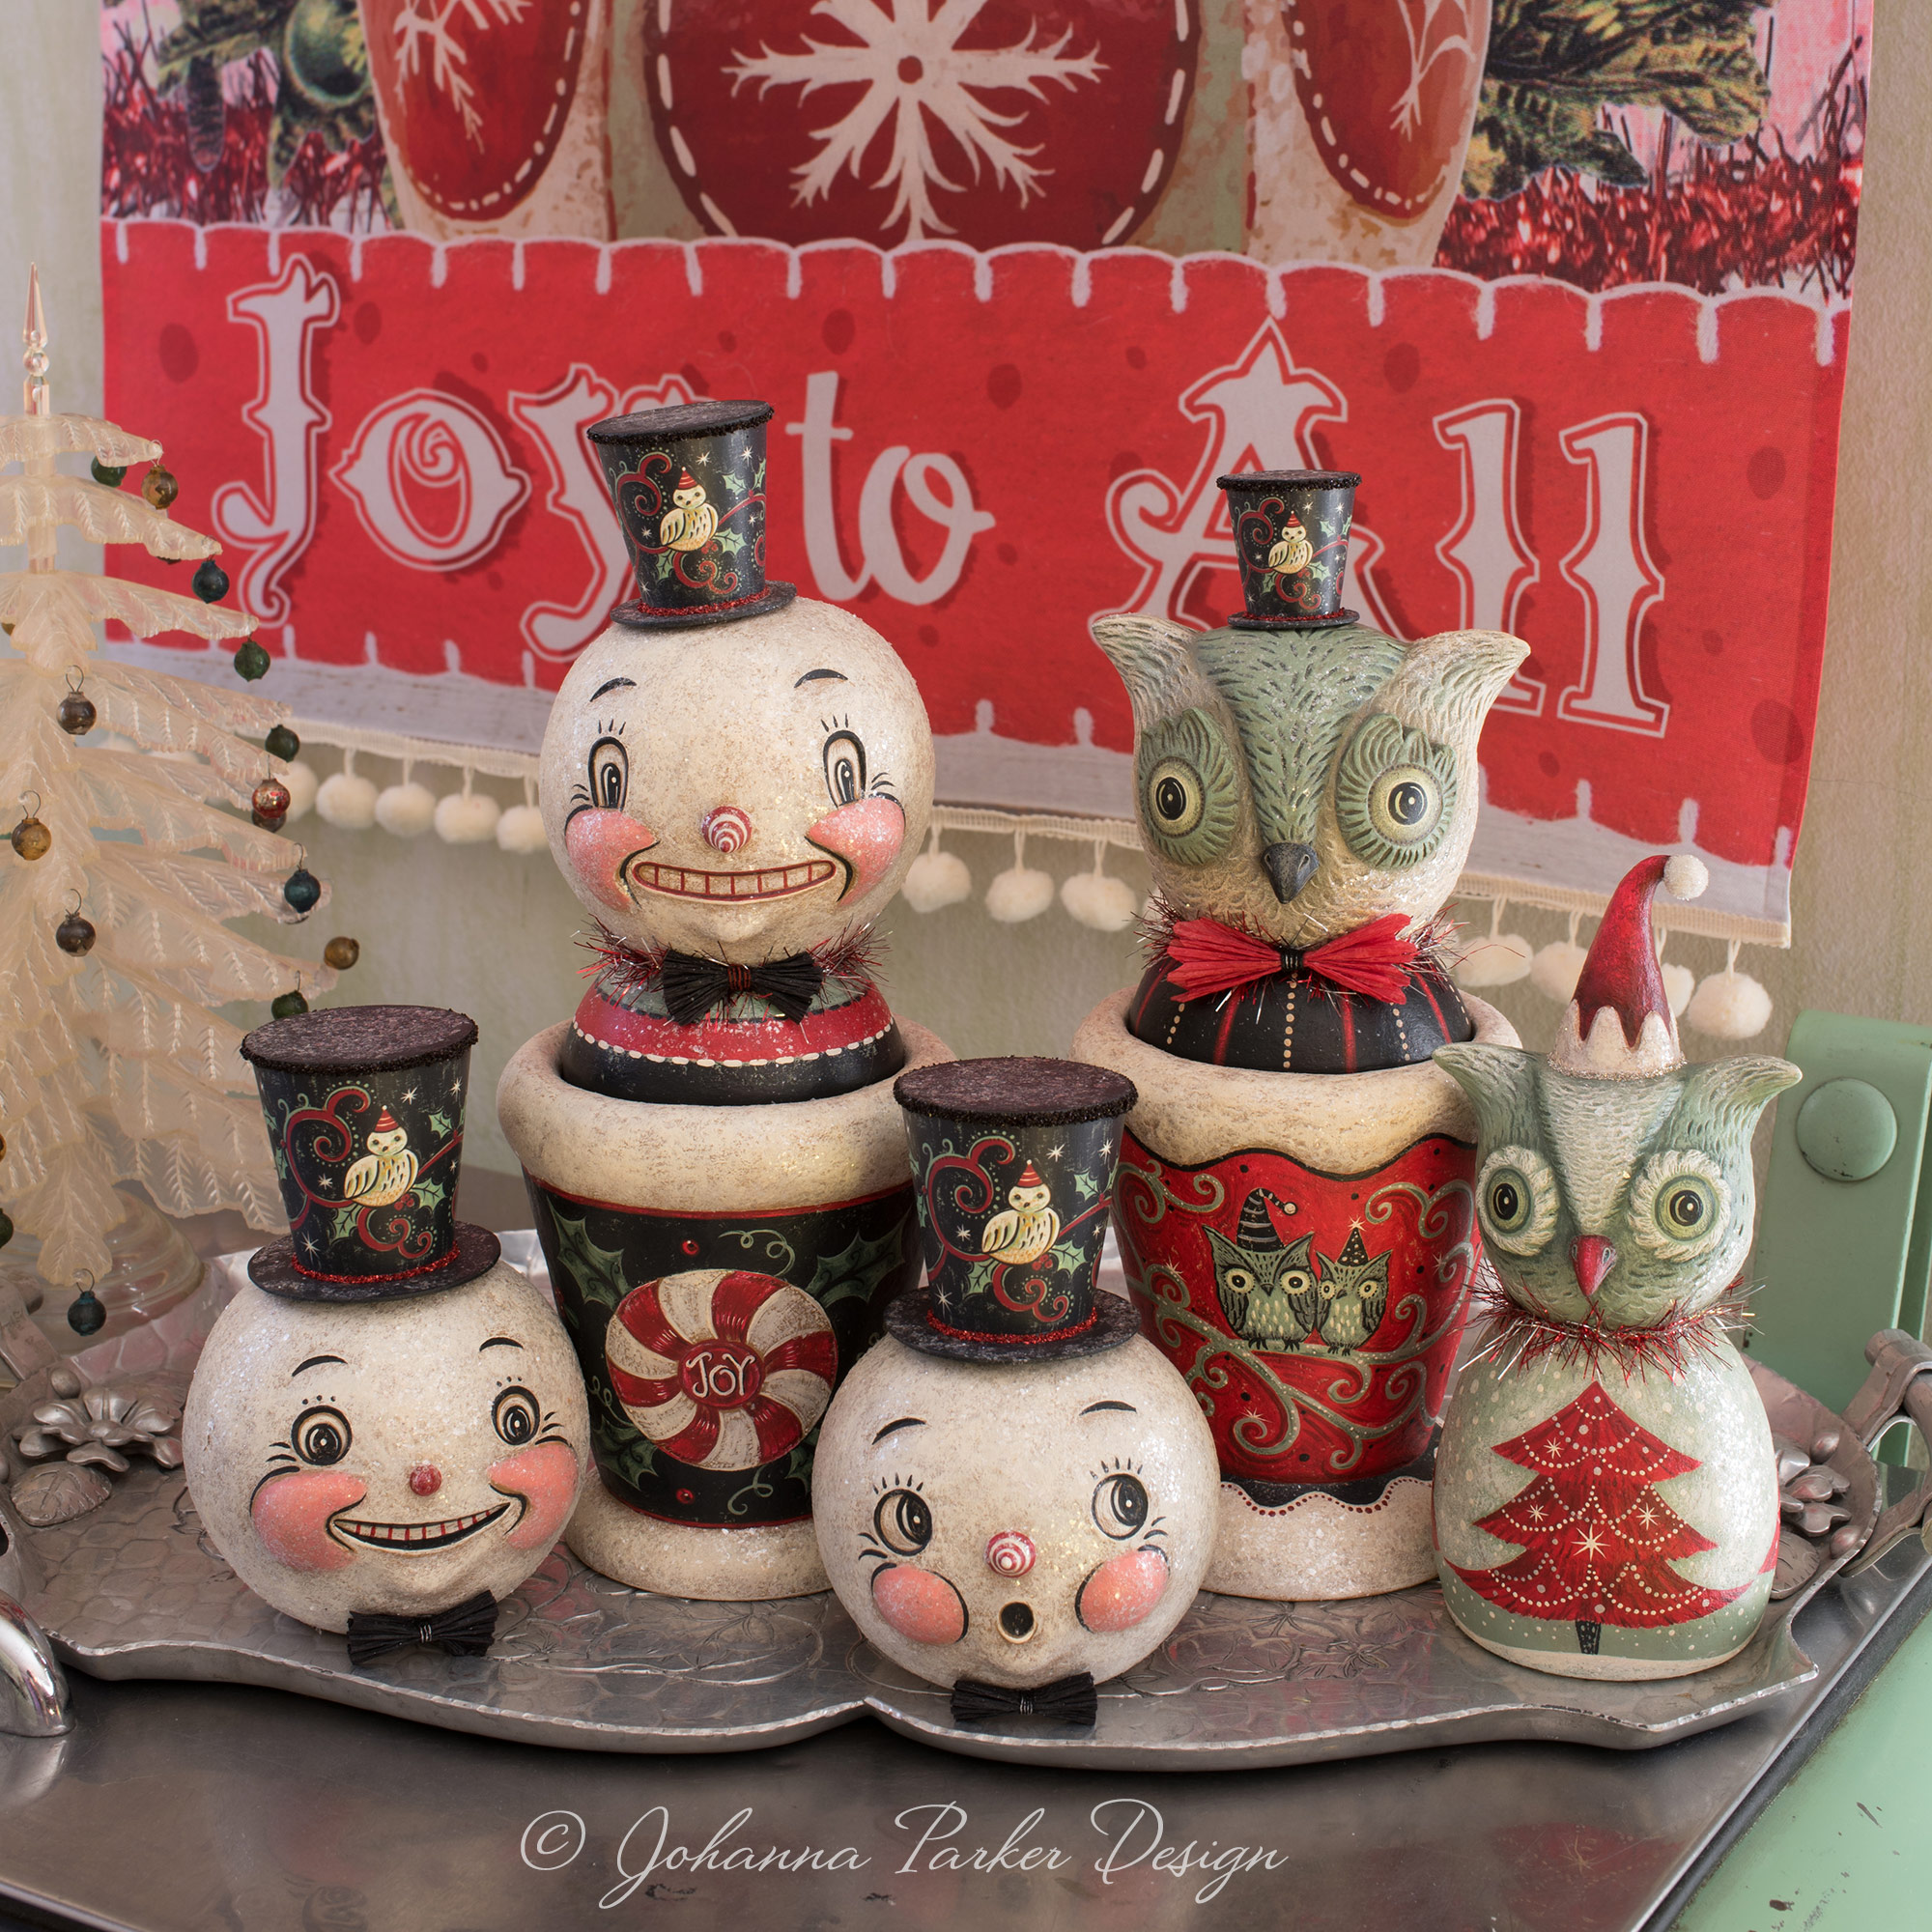 Snowy-Howliday-Group-Johanna-Parker-square.jpg